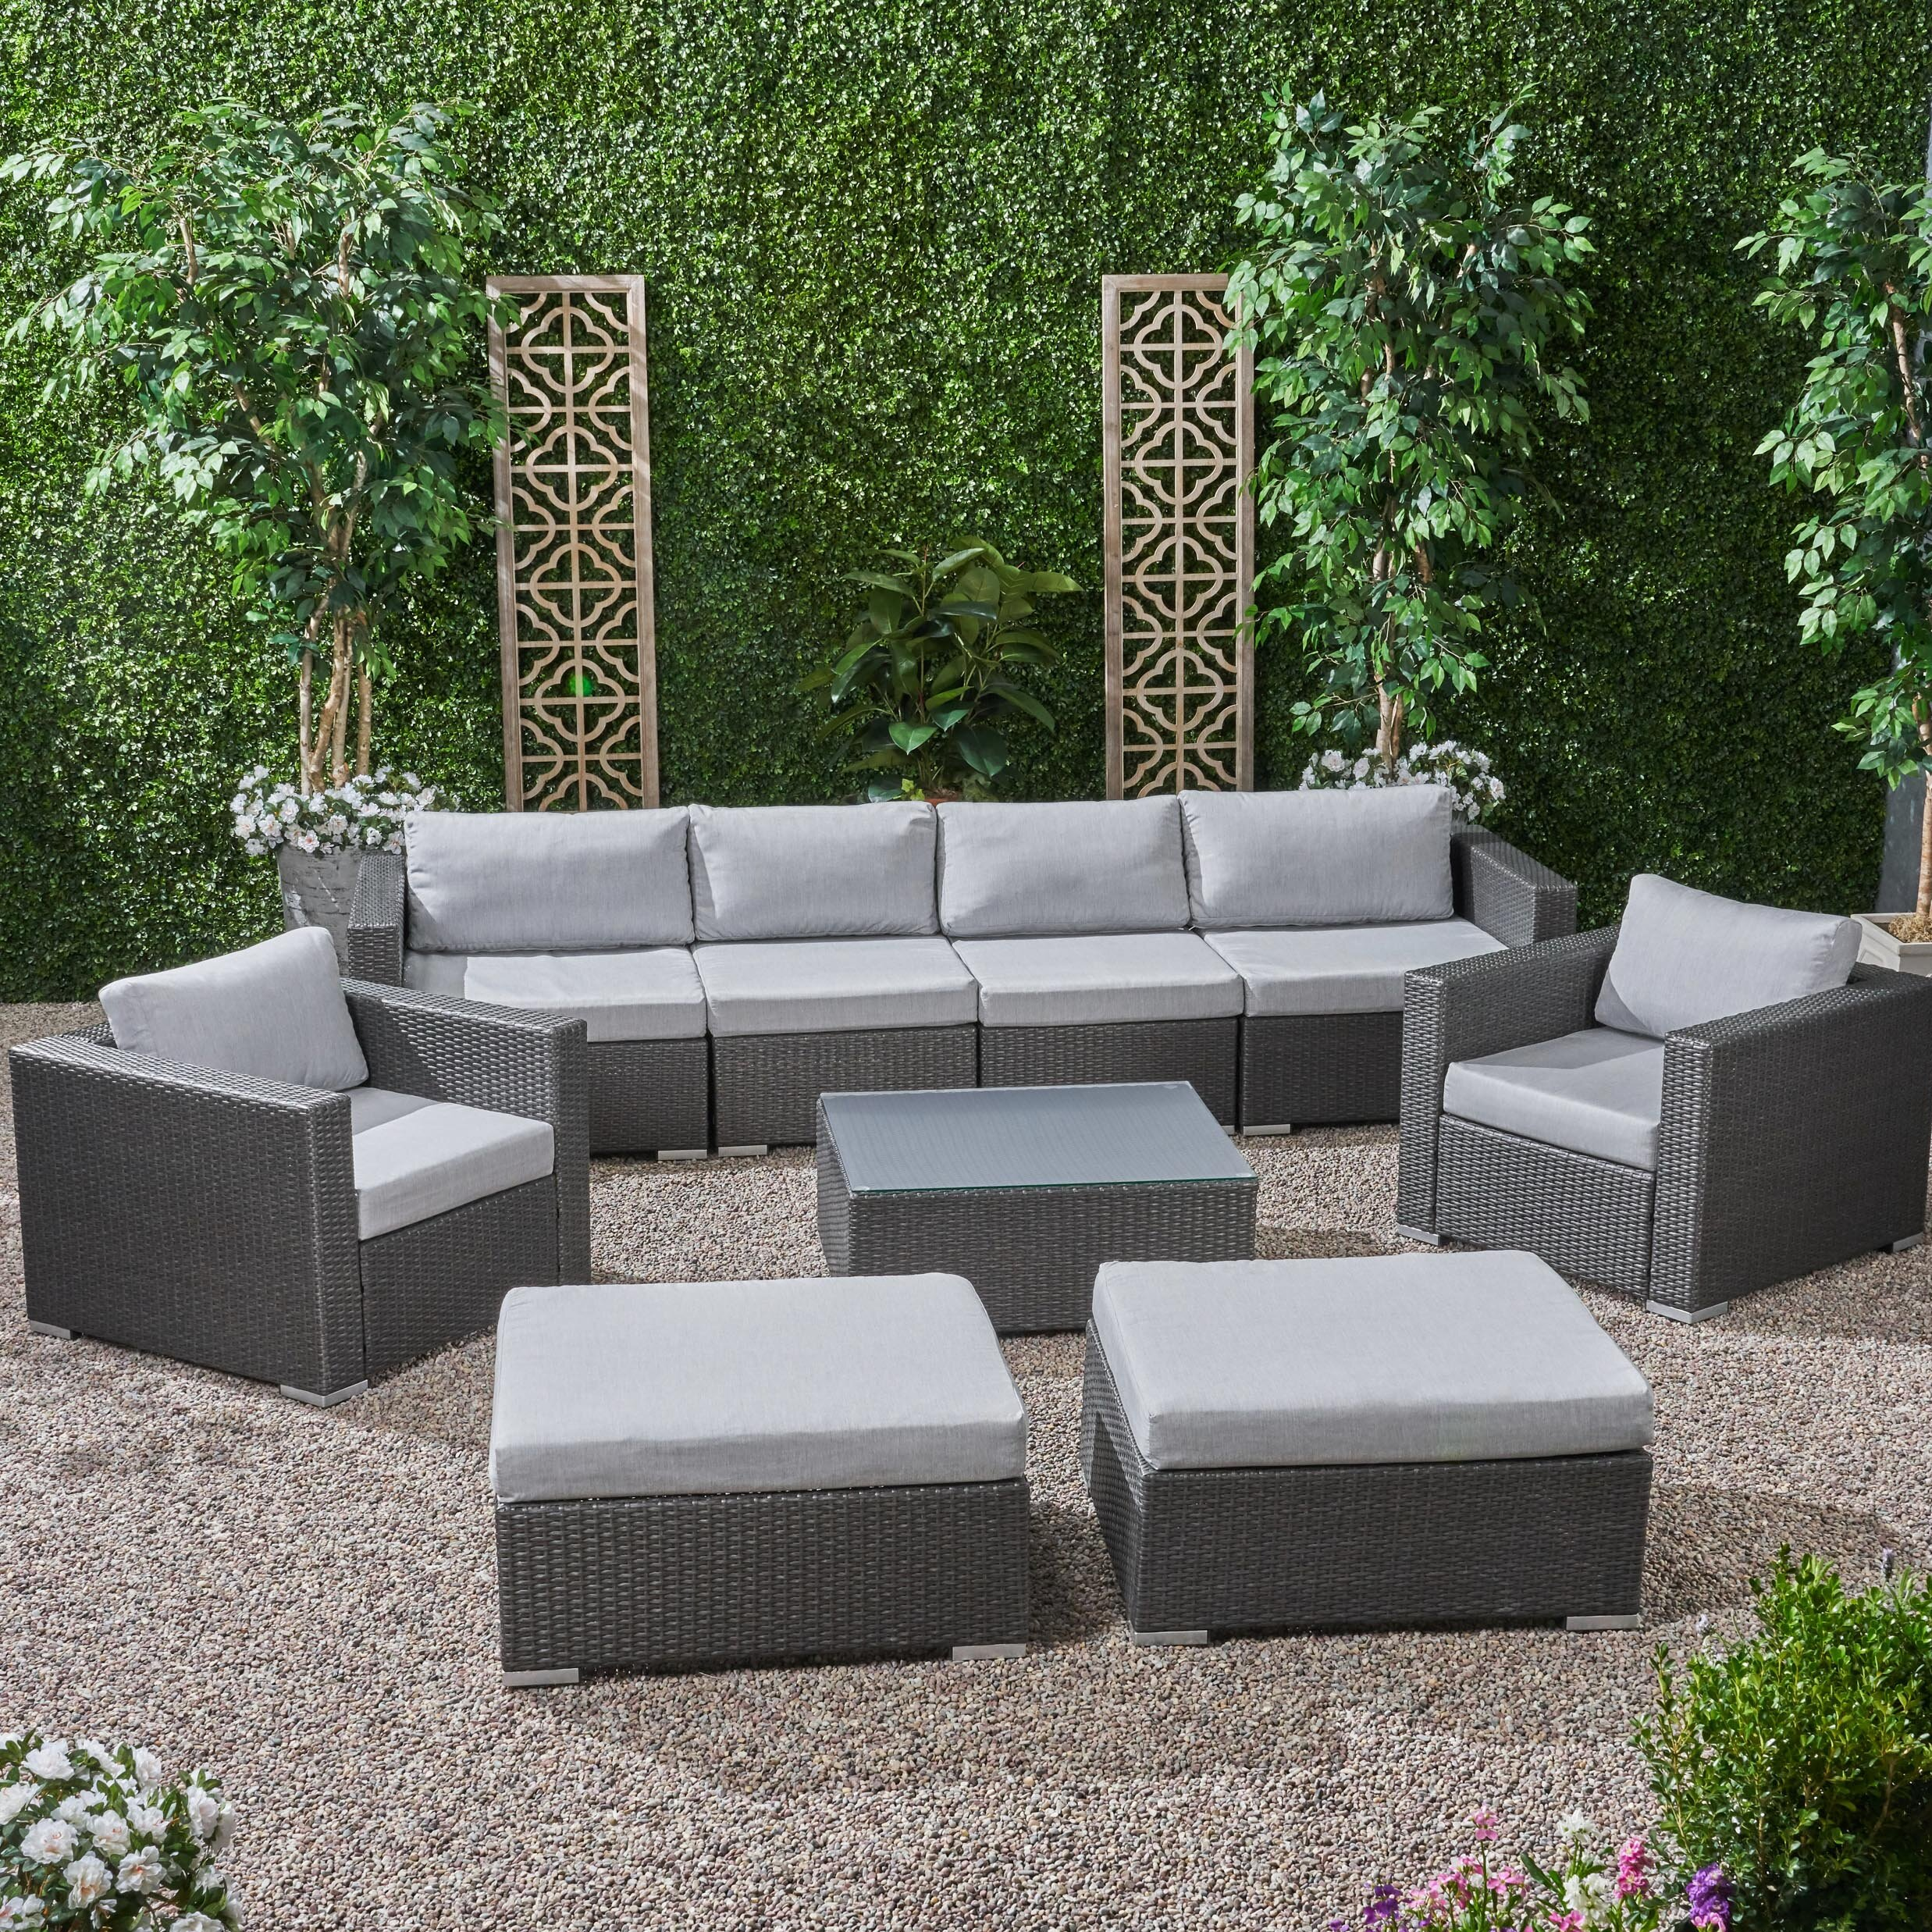 6 Seater Wicker Modular Sectional